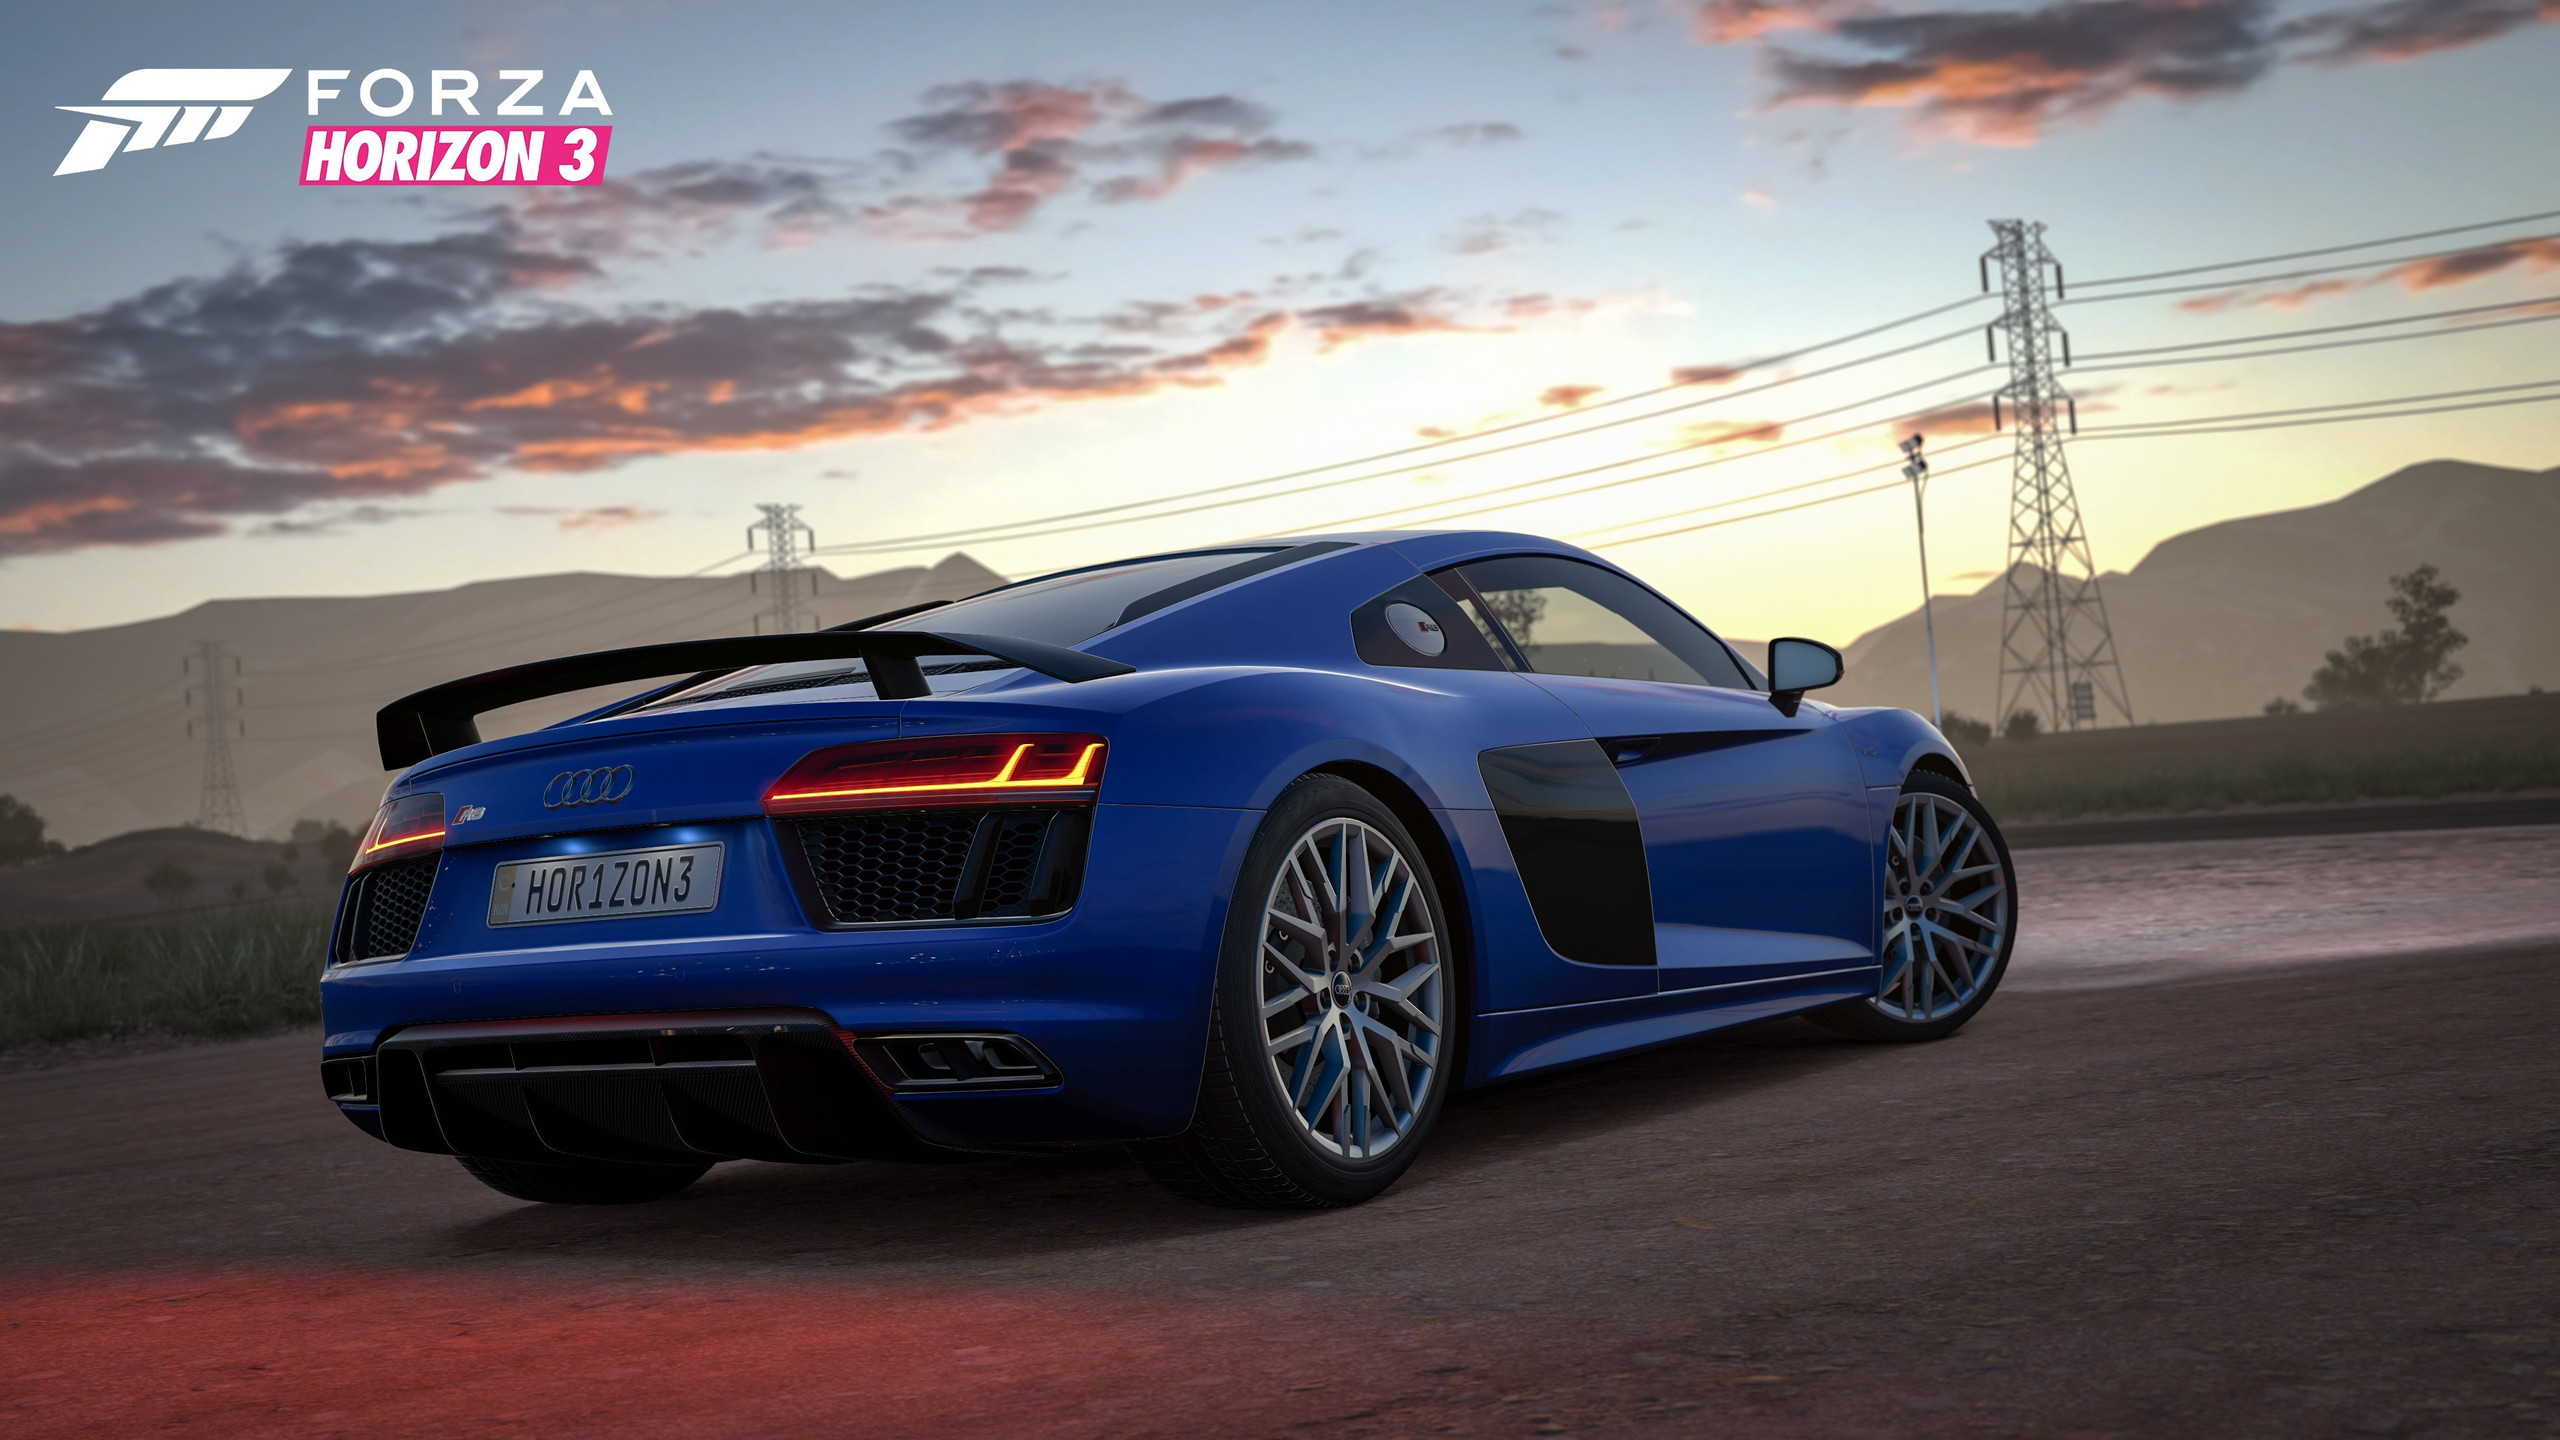 Audi R8 V10 Plus is available as a bonus with Forza Horizon 3 pre